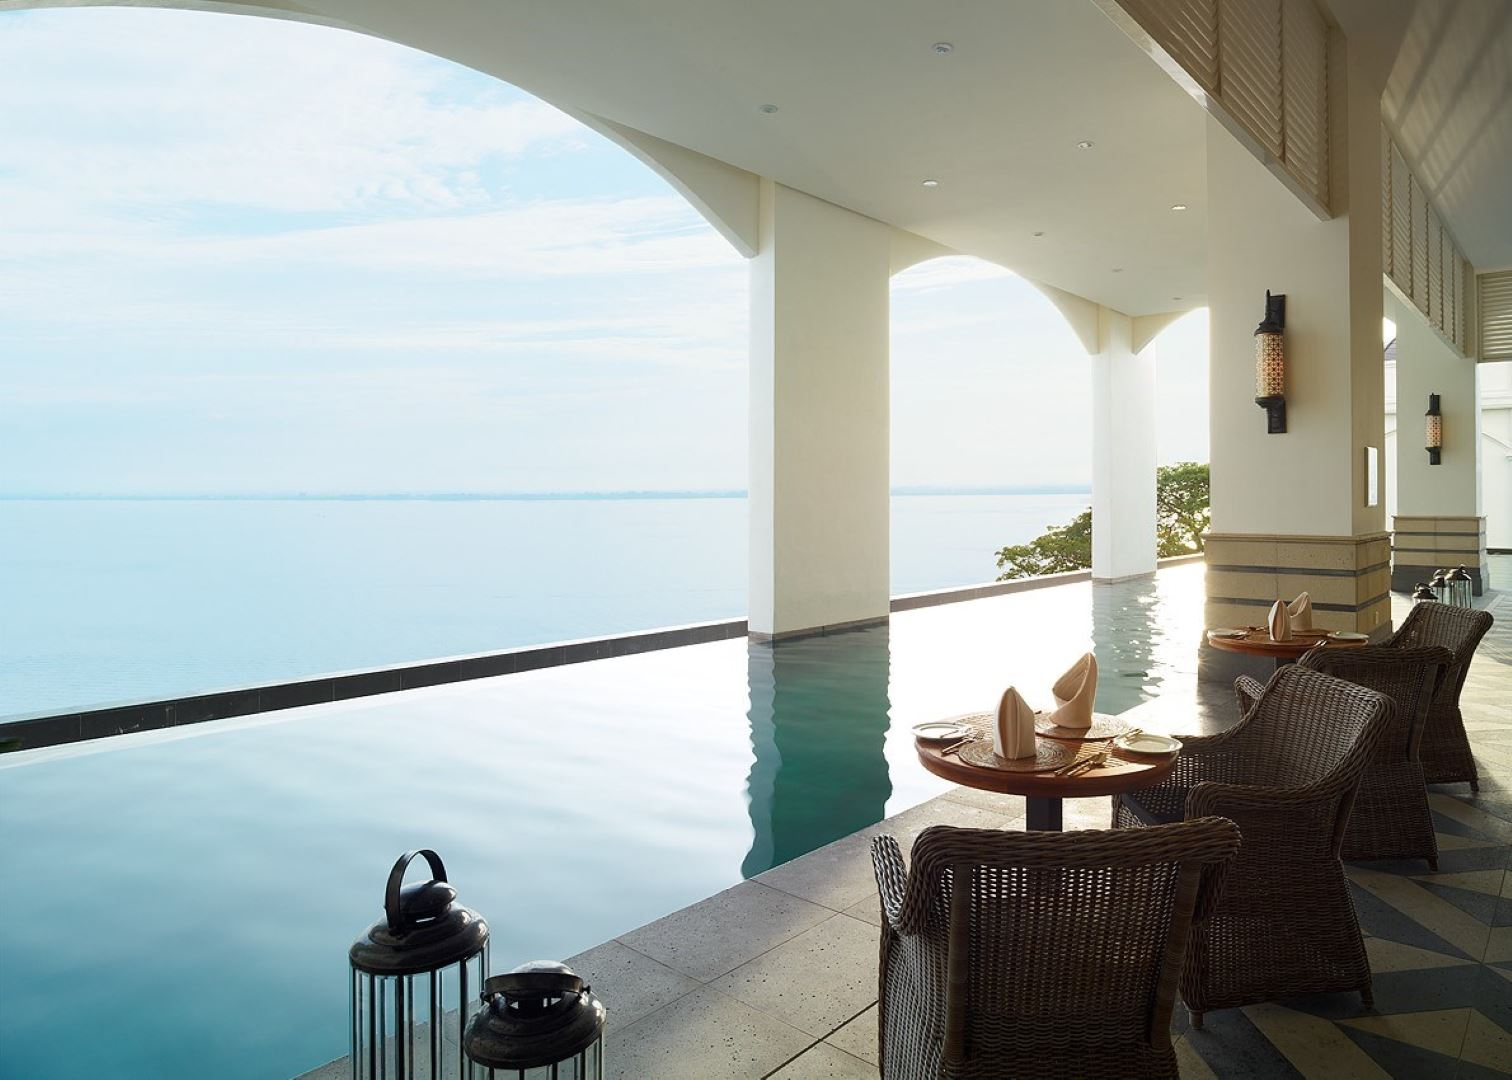 There's even a pool overlooking the sea!